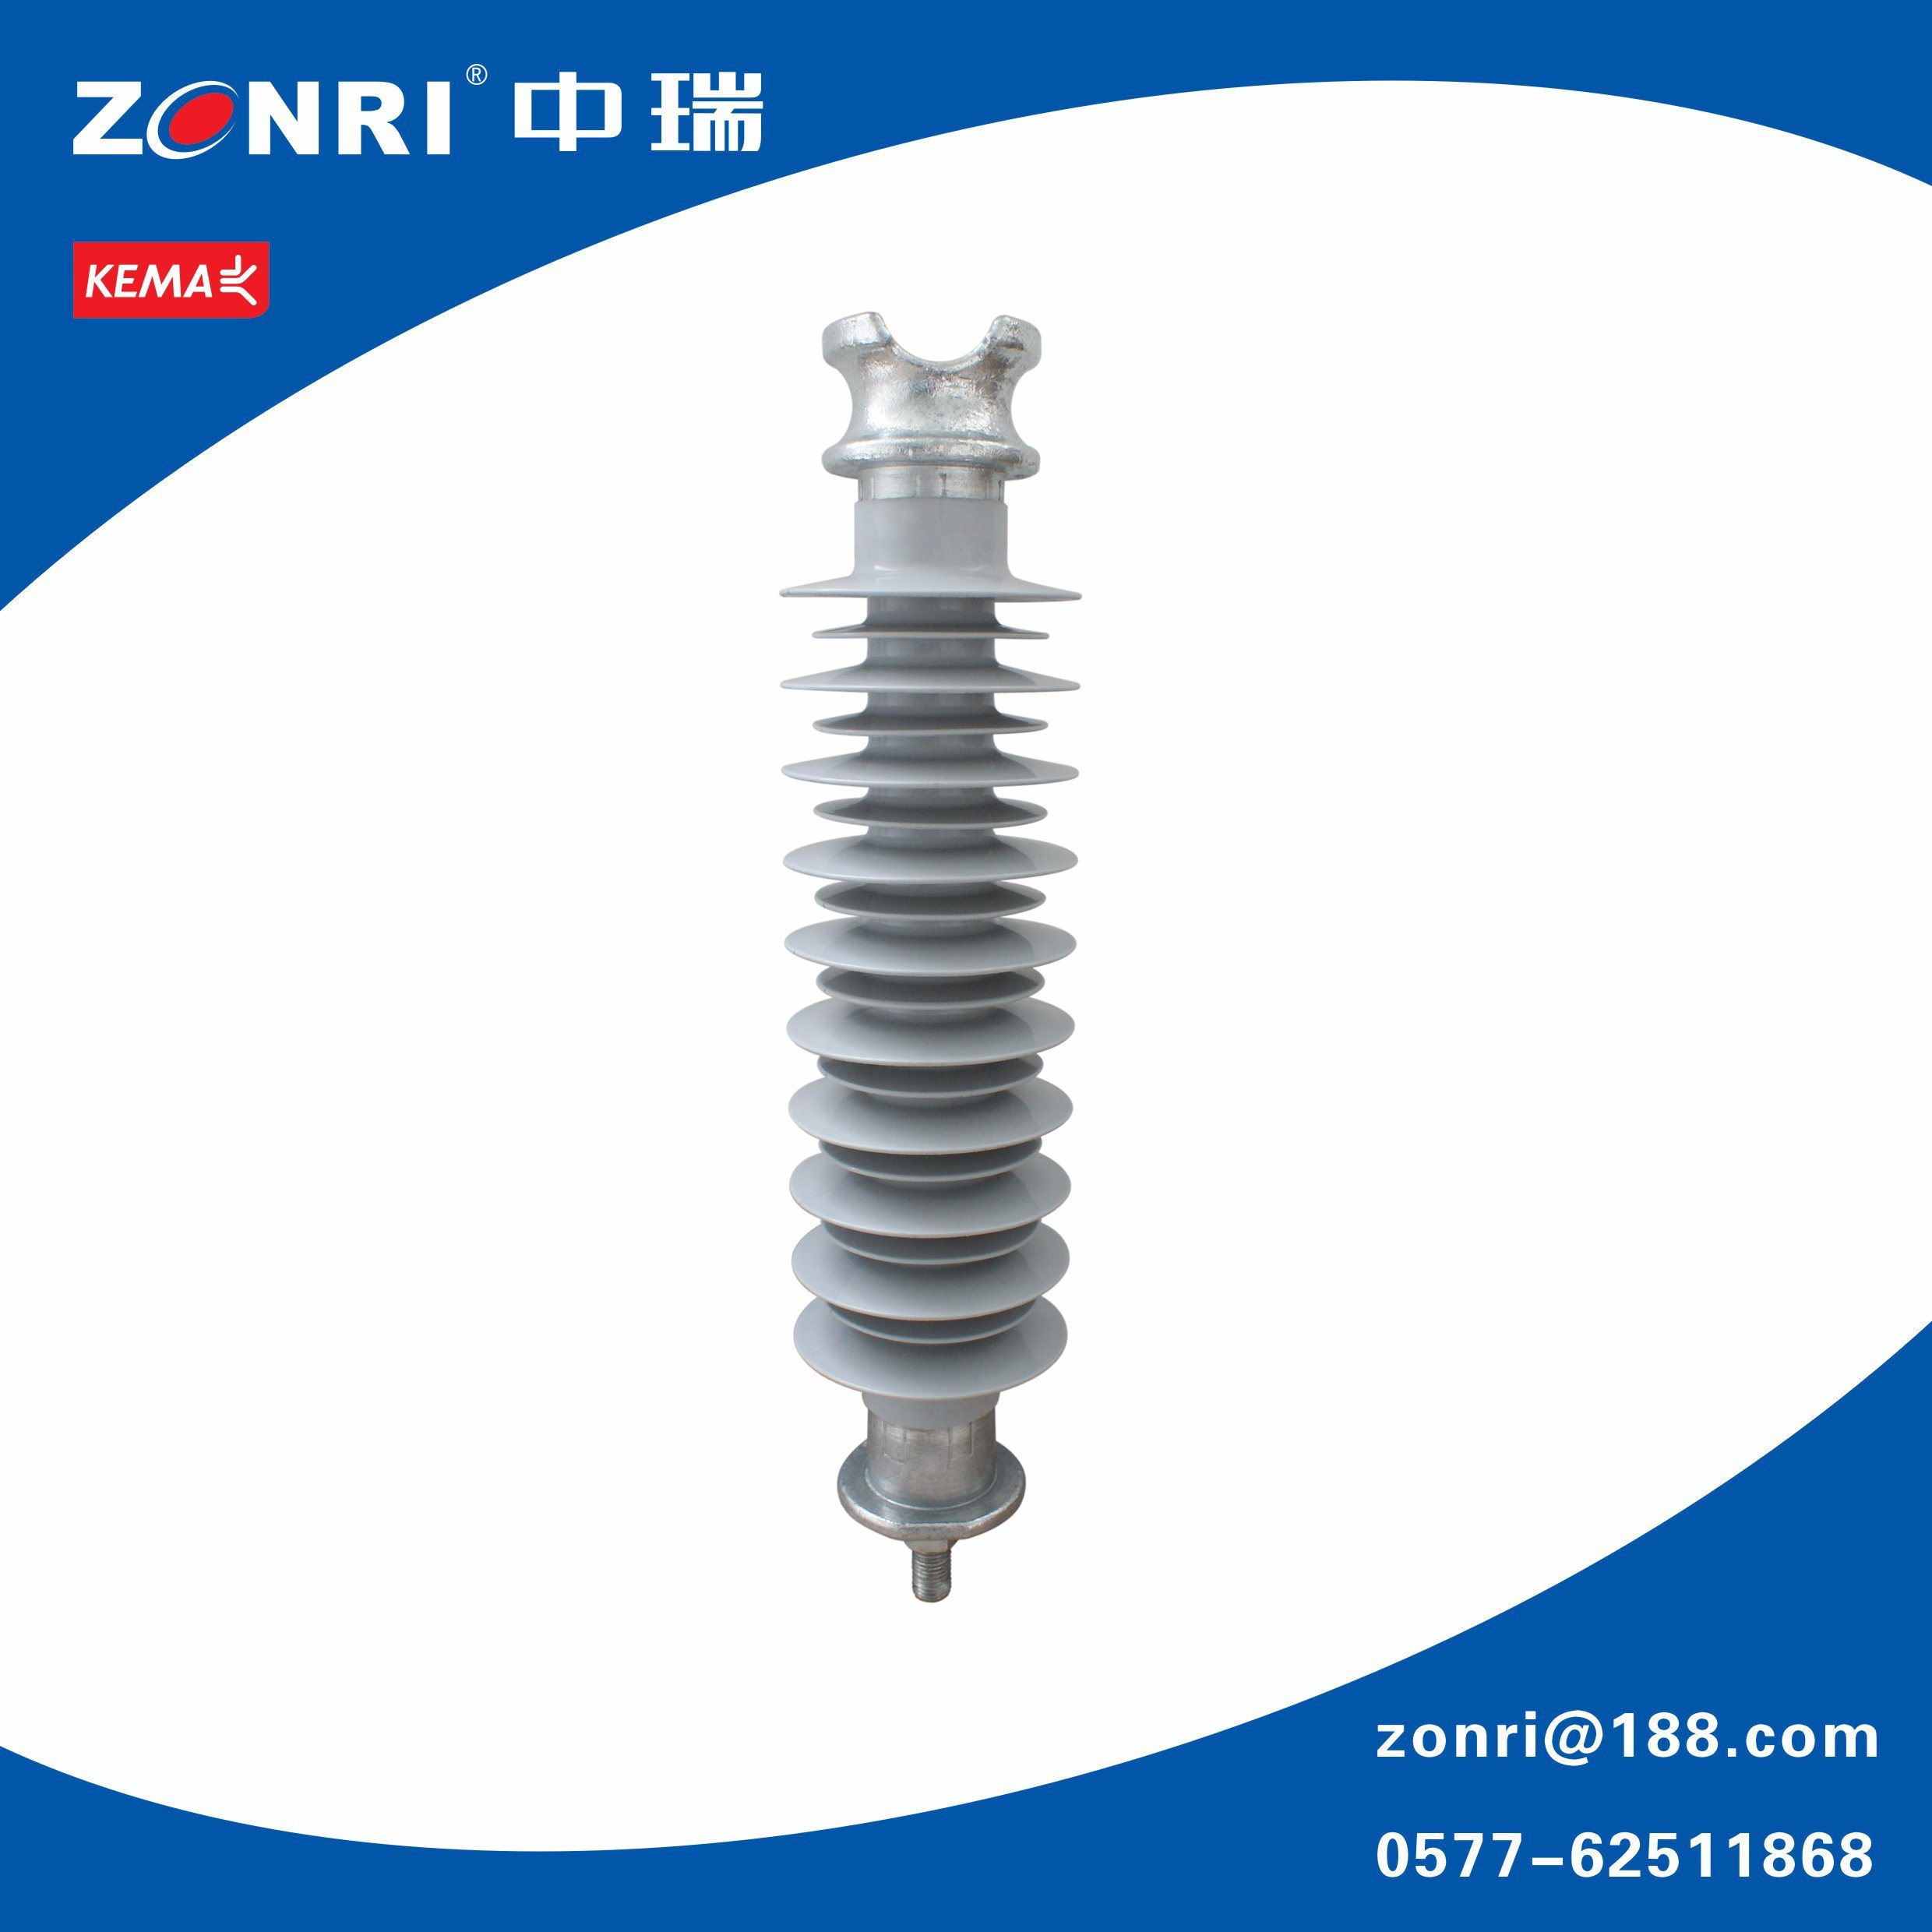 Composite Pin Insulator/ Line Post Insulator 36kv 6kn (FPQ)